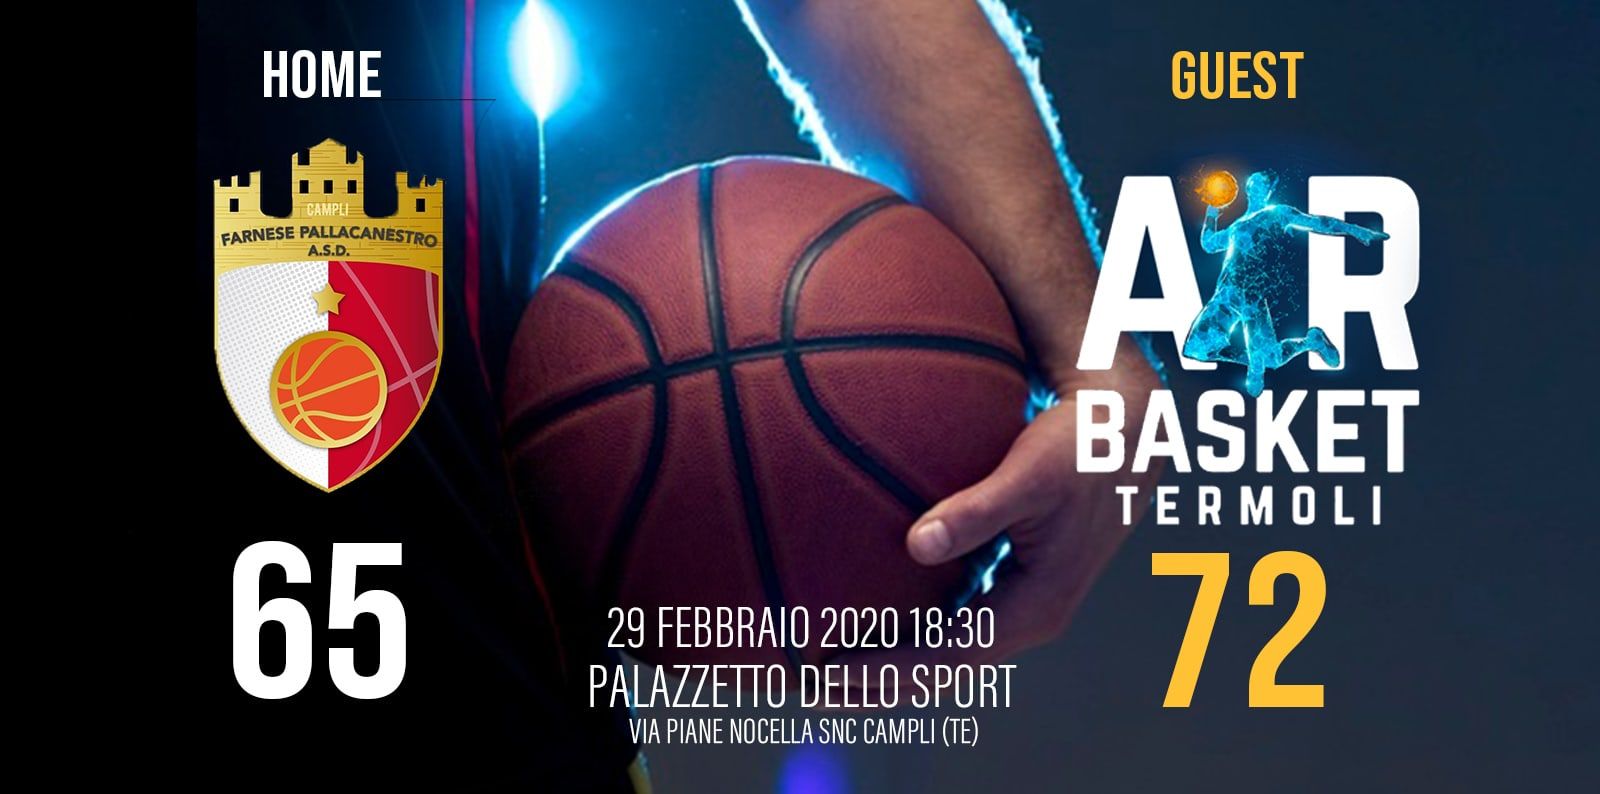 FARNESE PALLACANESTRO vs AIR BASKET TERMOLI